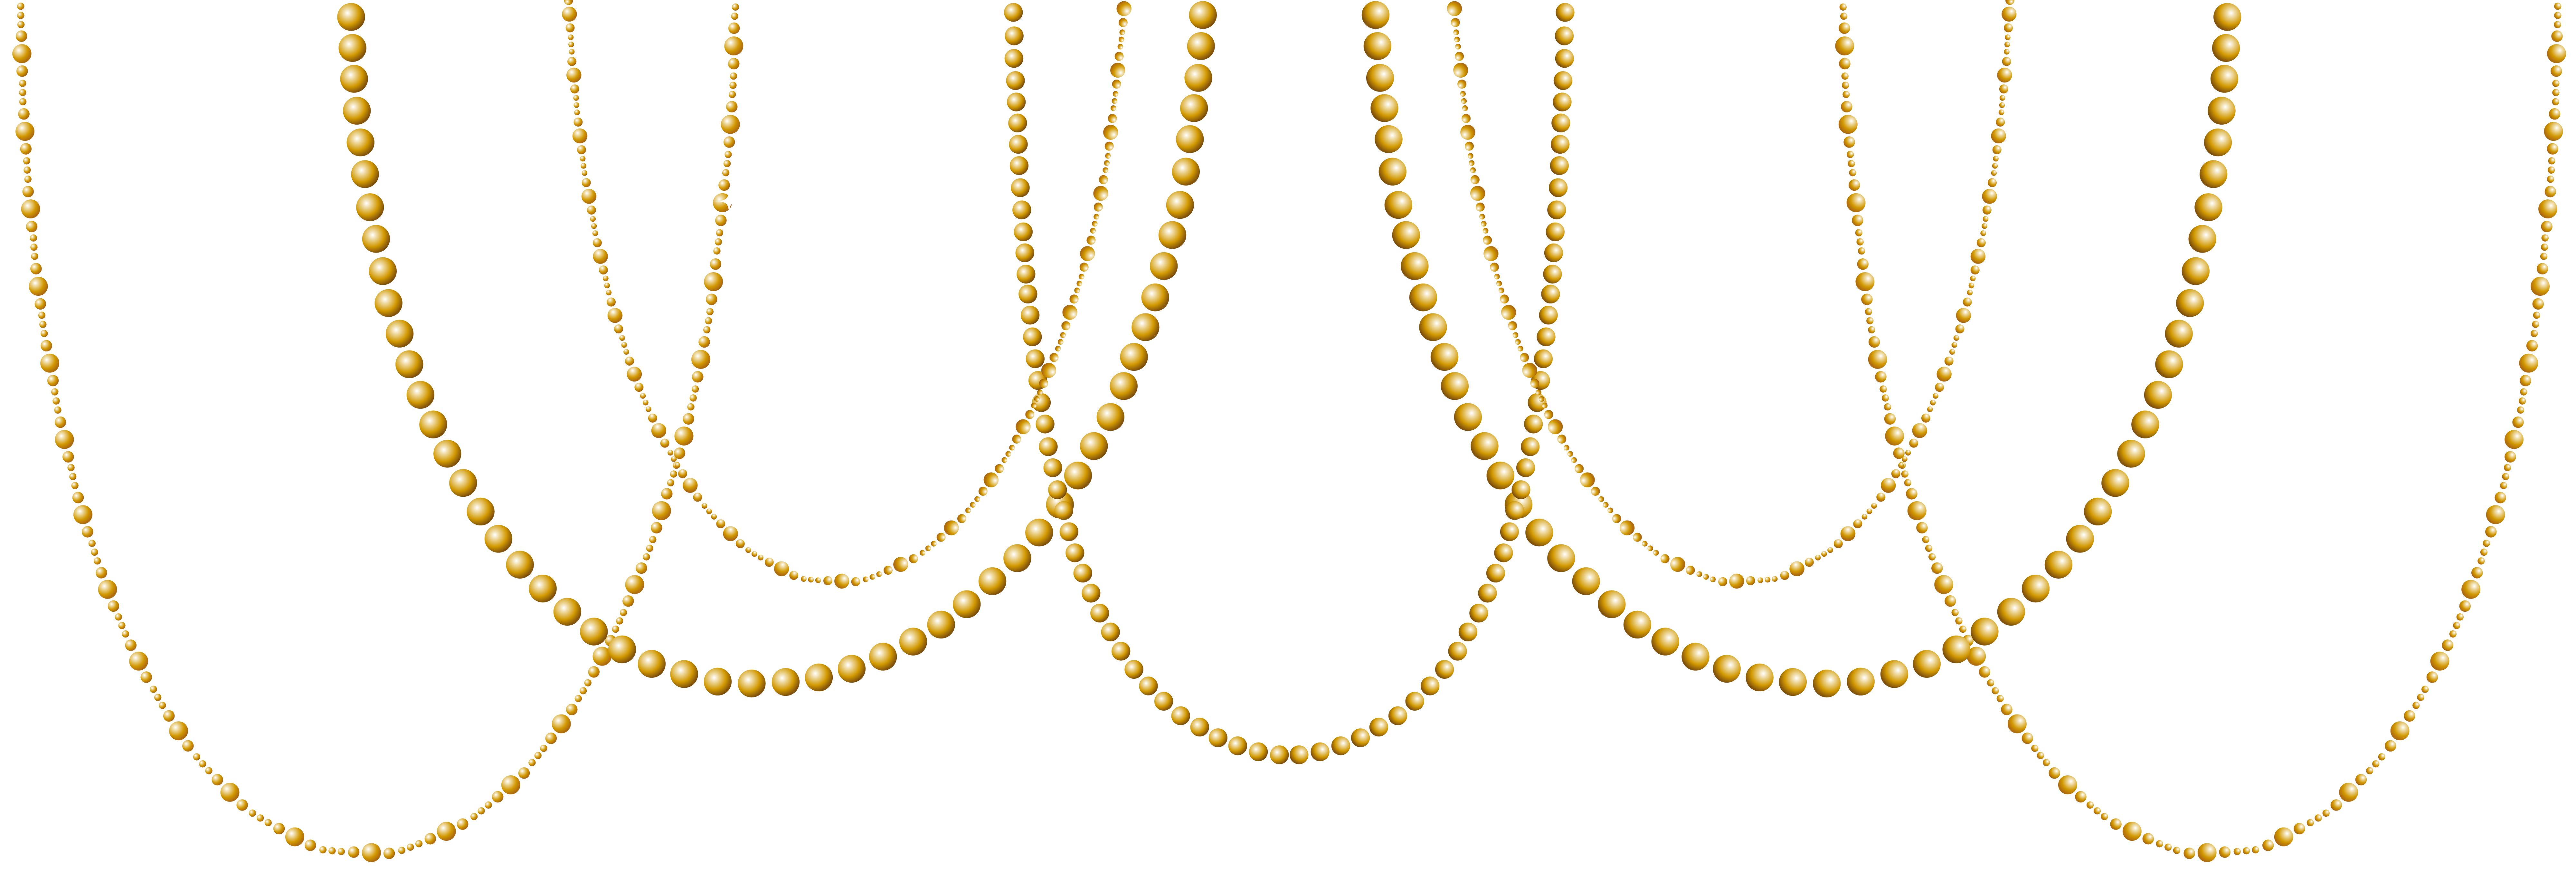 clipart royalty free stock Pearls clipart. Deco gold transparent clip